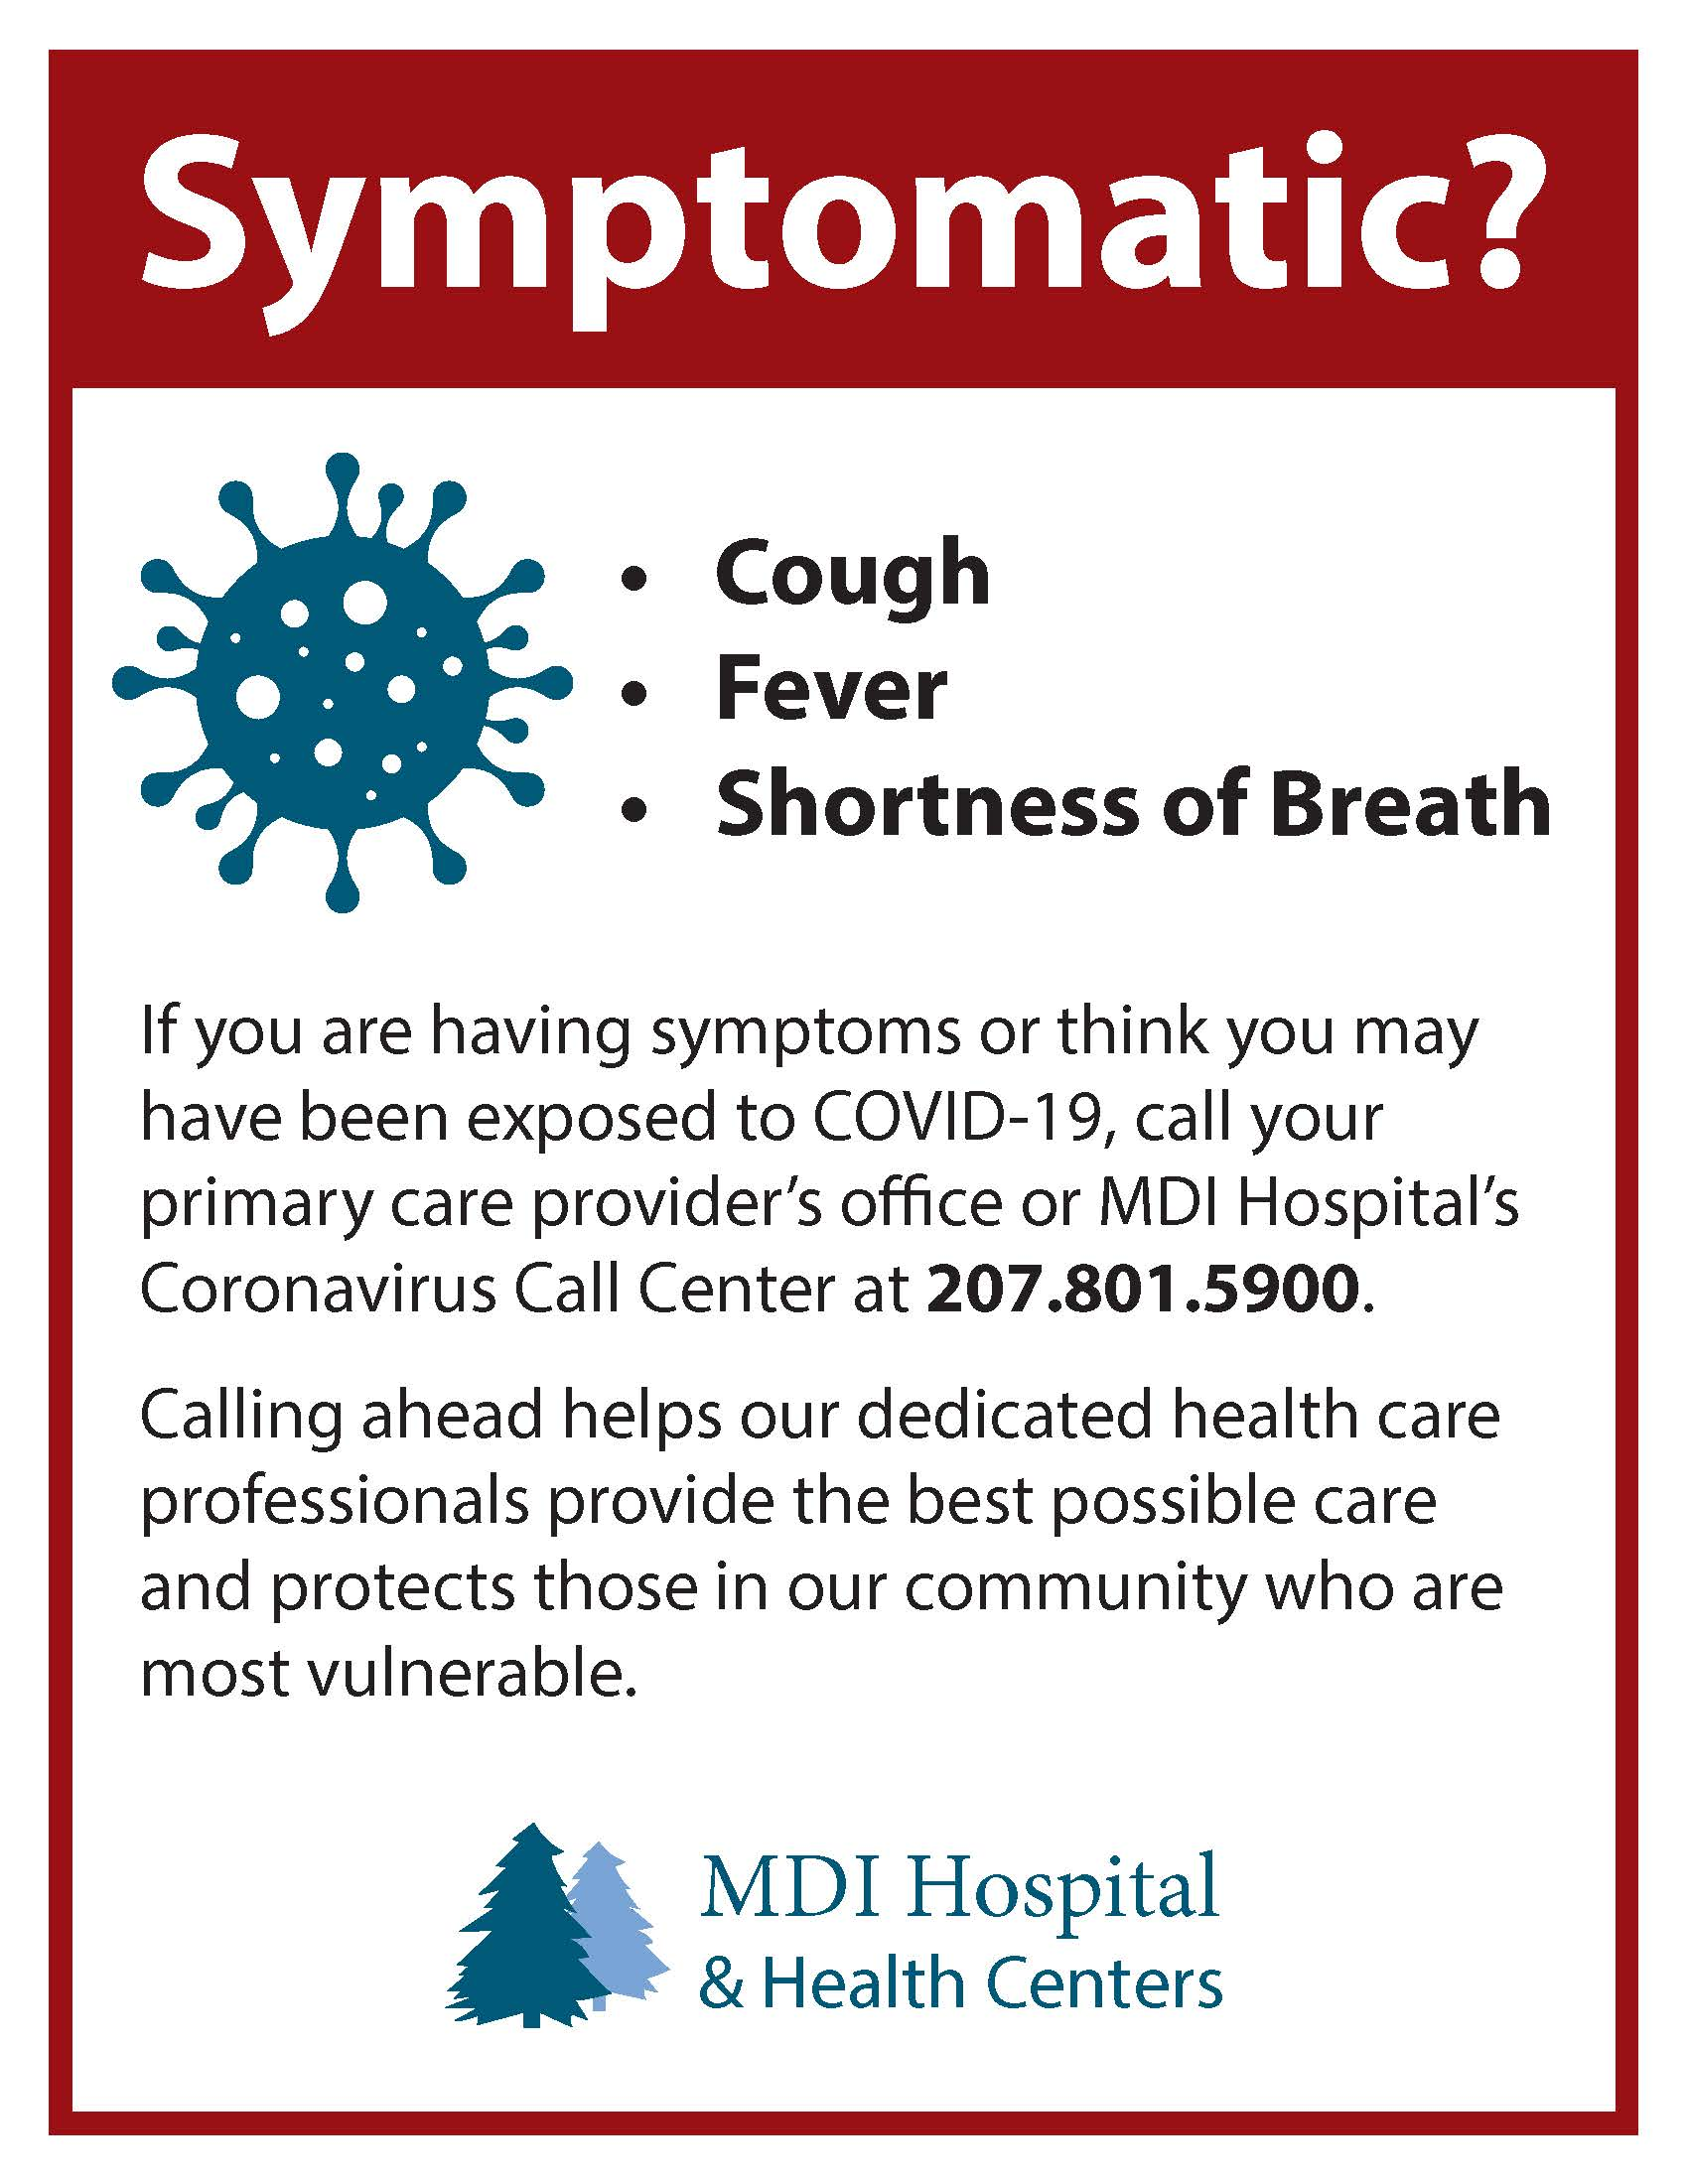 MDI-Hospital COVID-19 Symptoms Guidance